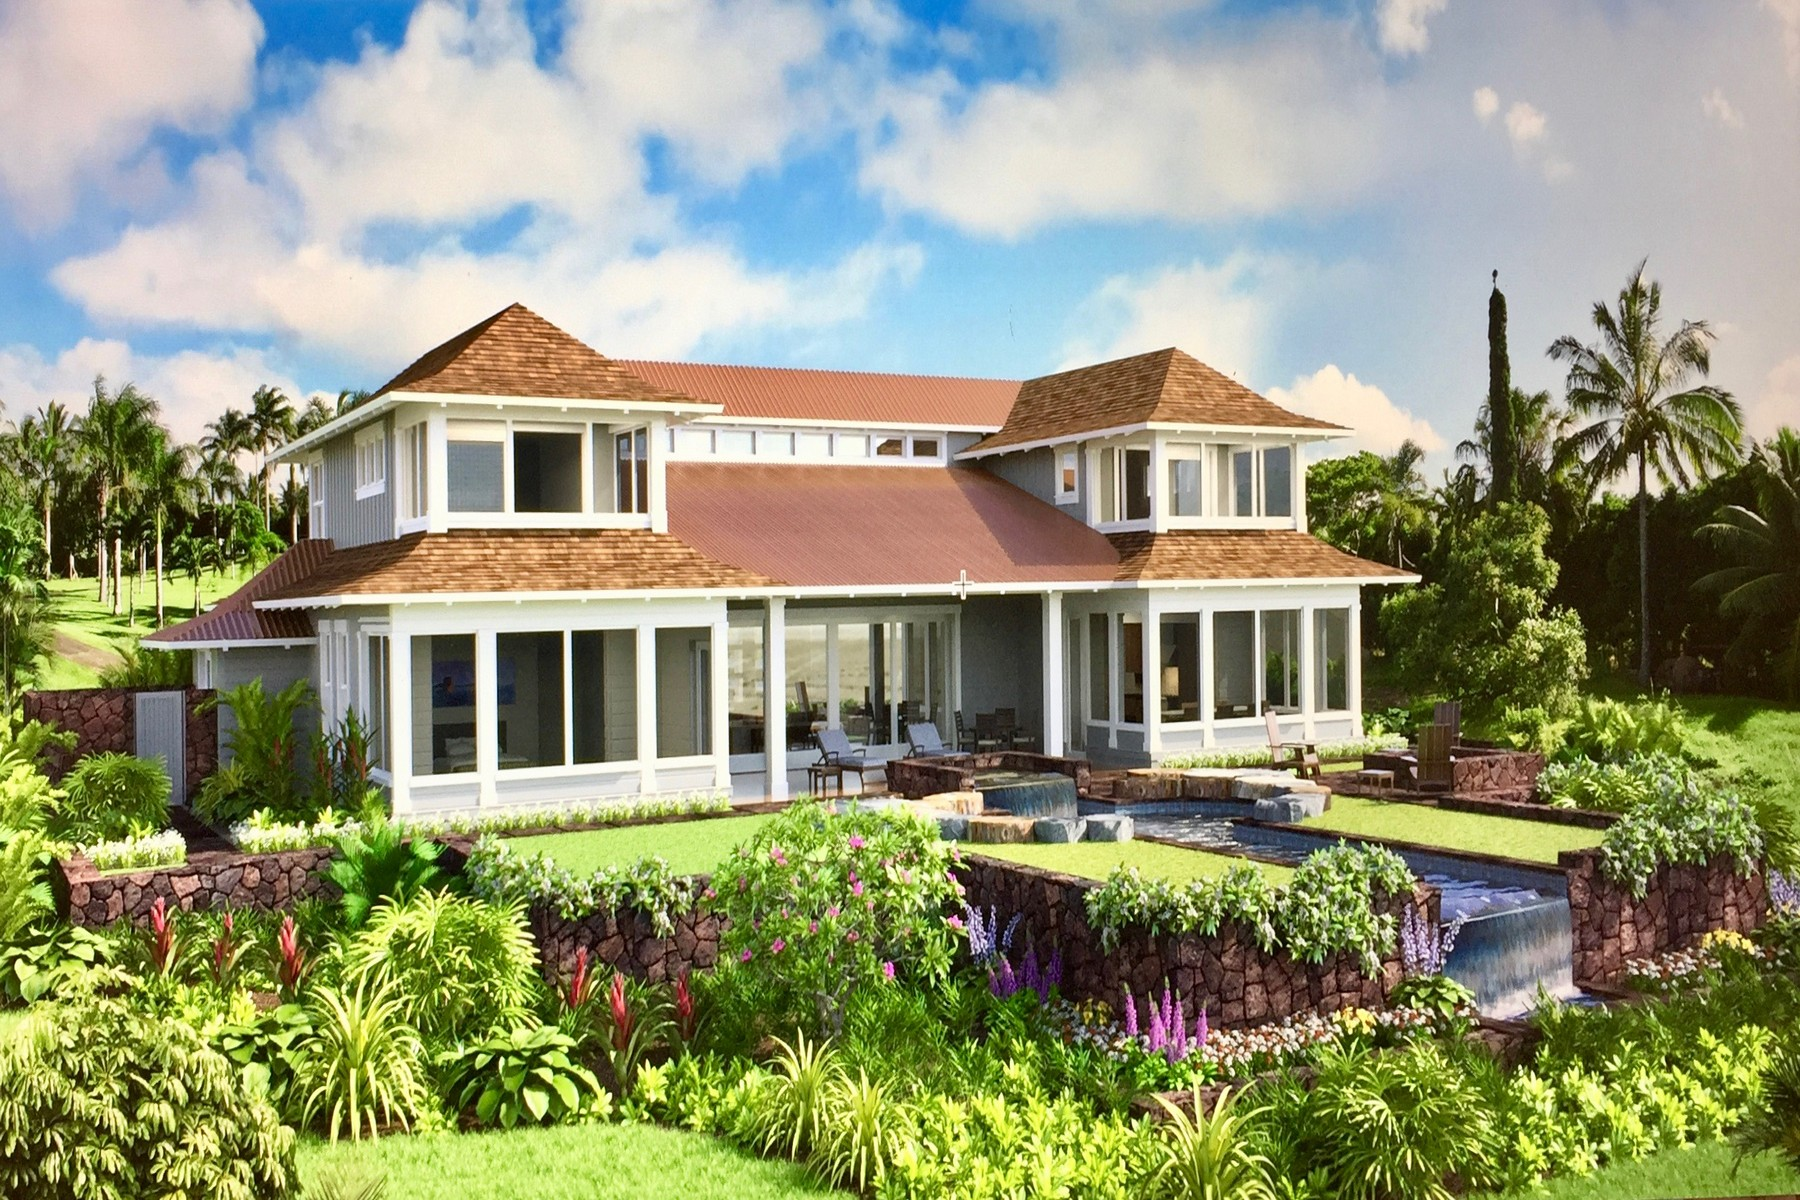 Vivienda unifamiliar por un Venta en THE HAIKU HOUSE...Rare Ocean Front New Construction in Haiku, Maui 40 Hale Pili Way, Lot 15 Aina O Ka Hale Pili Haiku, Hawaii, 96708 Estados Unidos